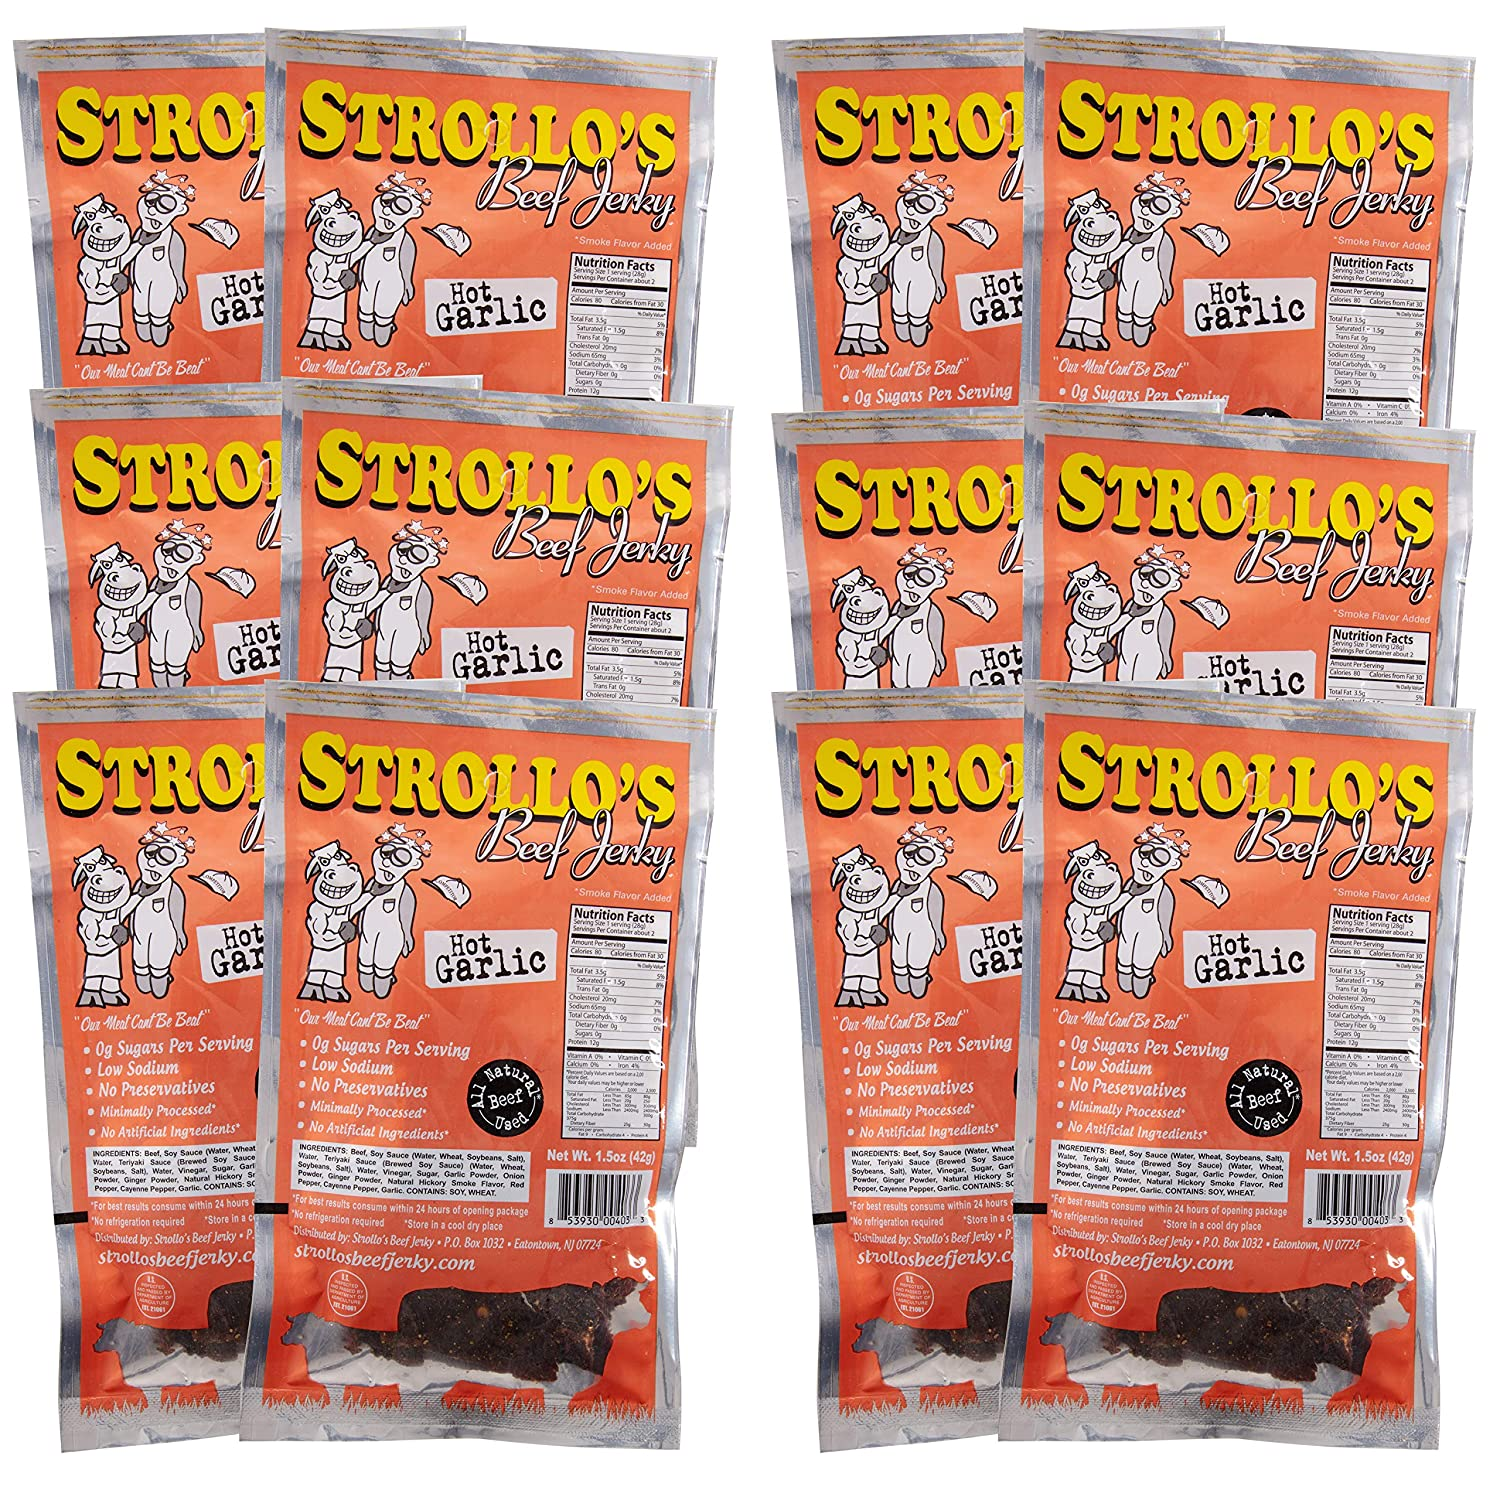 Strollo's Beef Jerky Hot Garlic Flavor 1 Pack - Low Sodium, Low Sugar, Low Carb - Made with All Natural USA Beef, USDA Certified